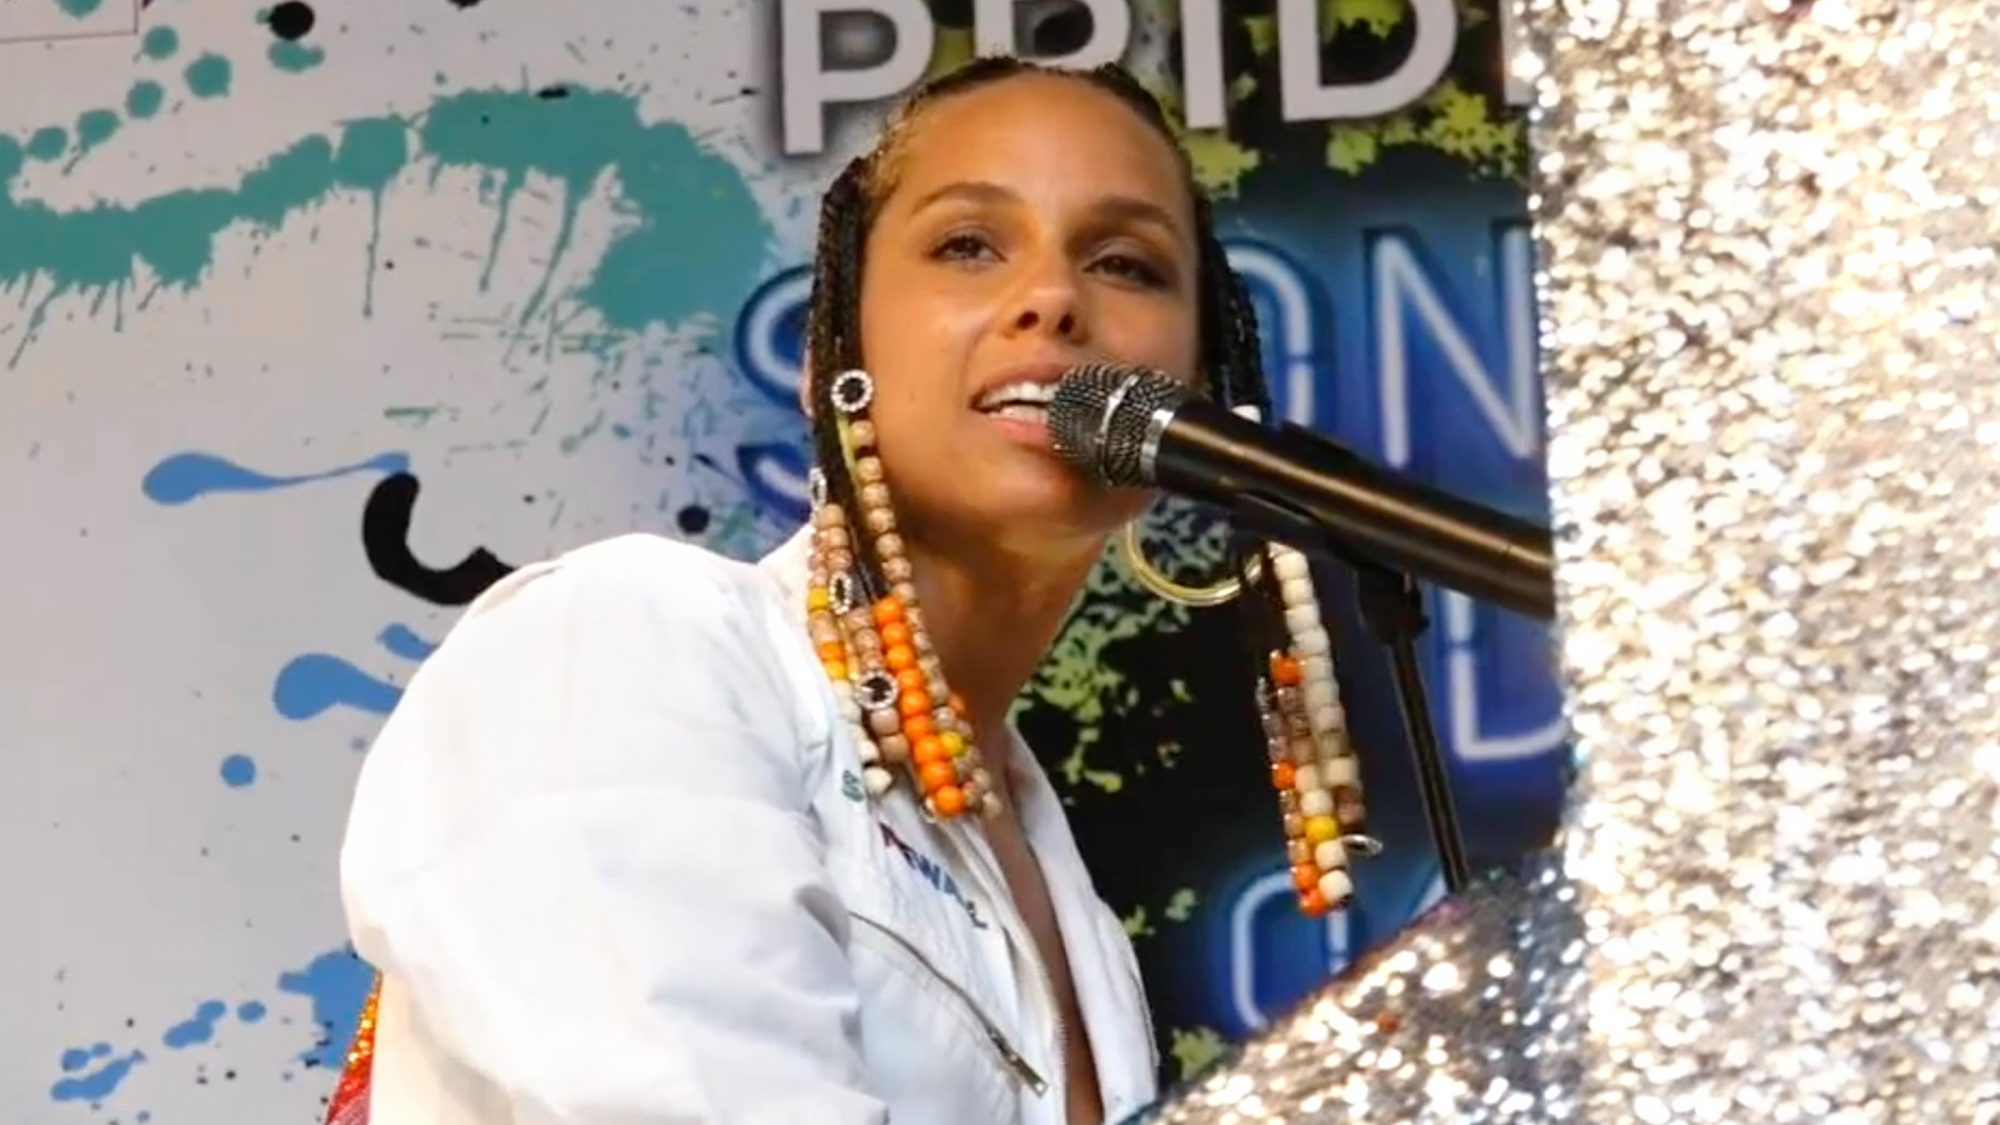 Pride Live's Stonewall Day presented by United Airlines Hosted By Elvis Duran (screen grab) Alicia Keys https://www.youtube.com/watch?v=crbgkpXkrBk CR: Z100 New York/YouTube